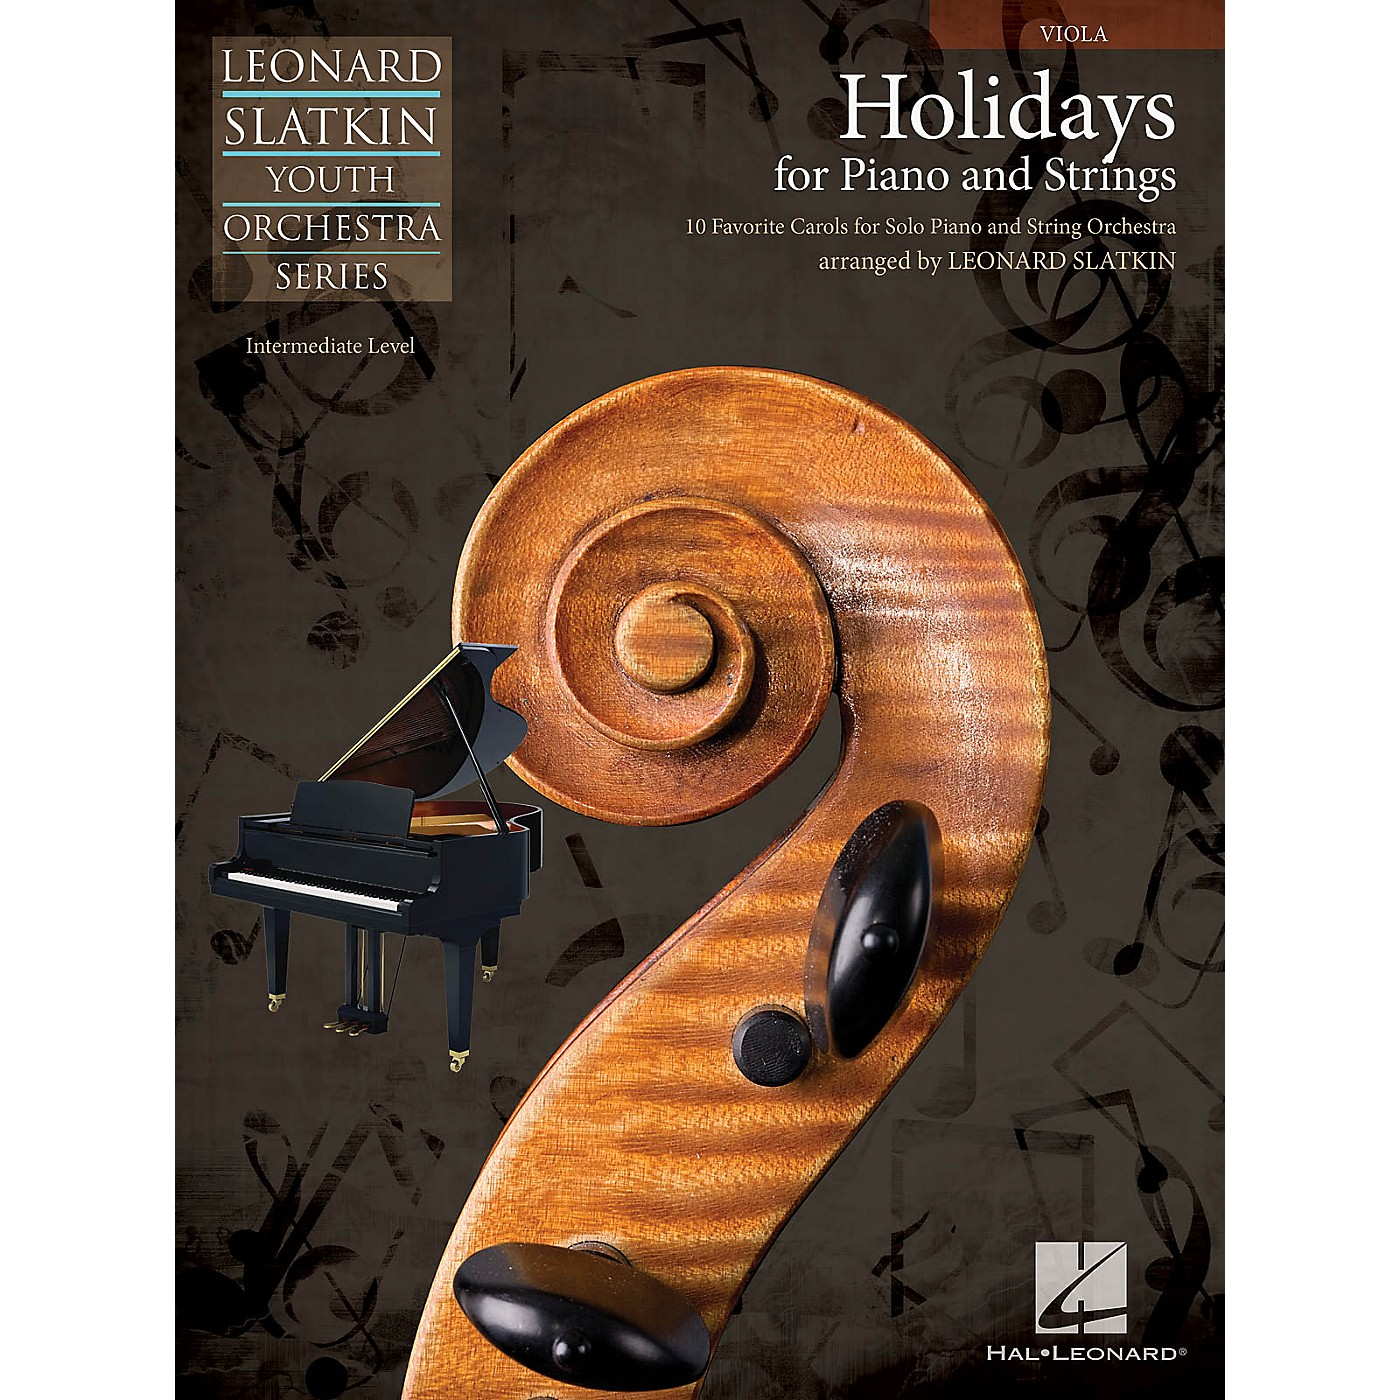 Hal Leonard Holidays for Piano and Strings (Volume 1 - Viola) Easy Music For Strings Series by Leonard Slatkin thumbnail